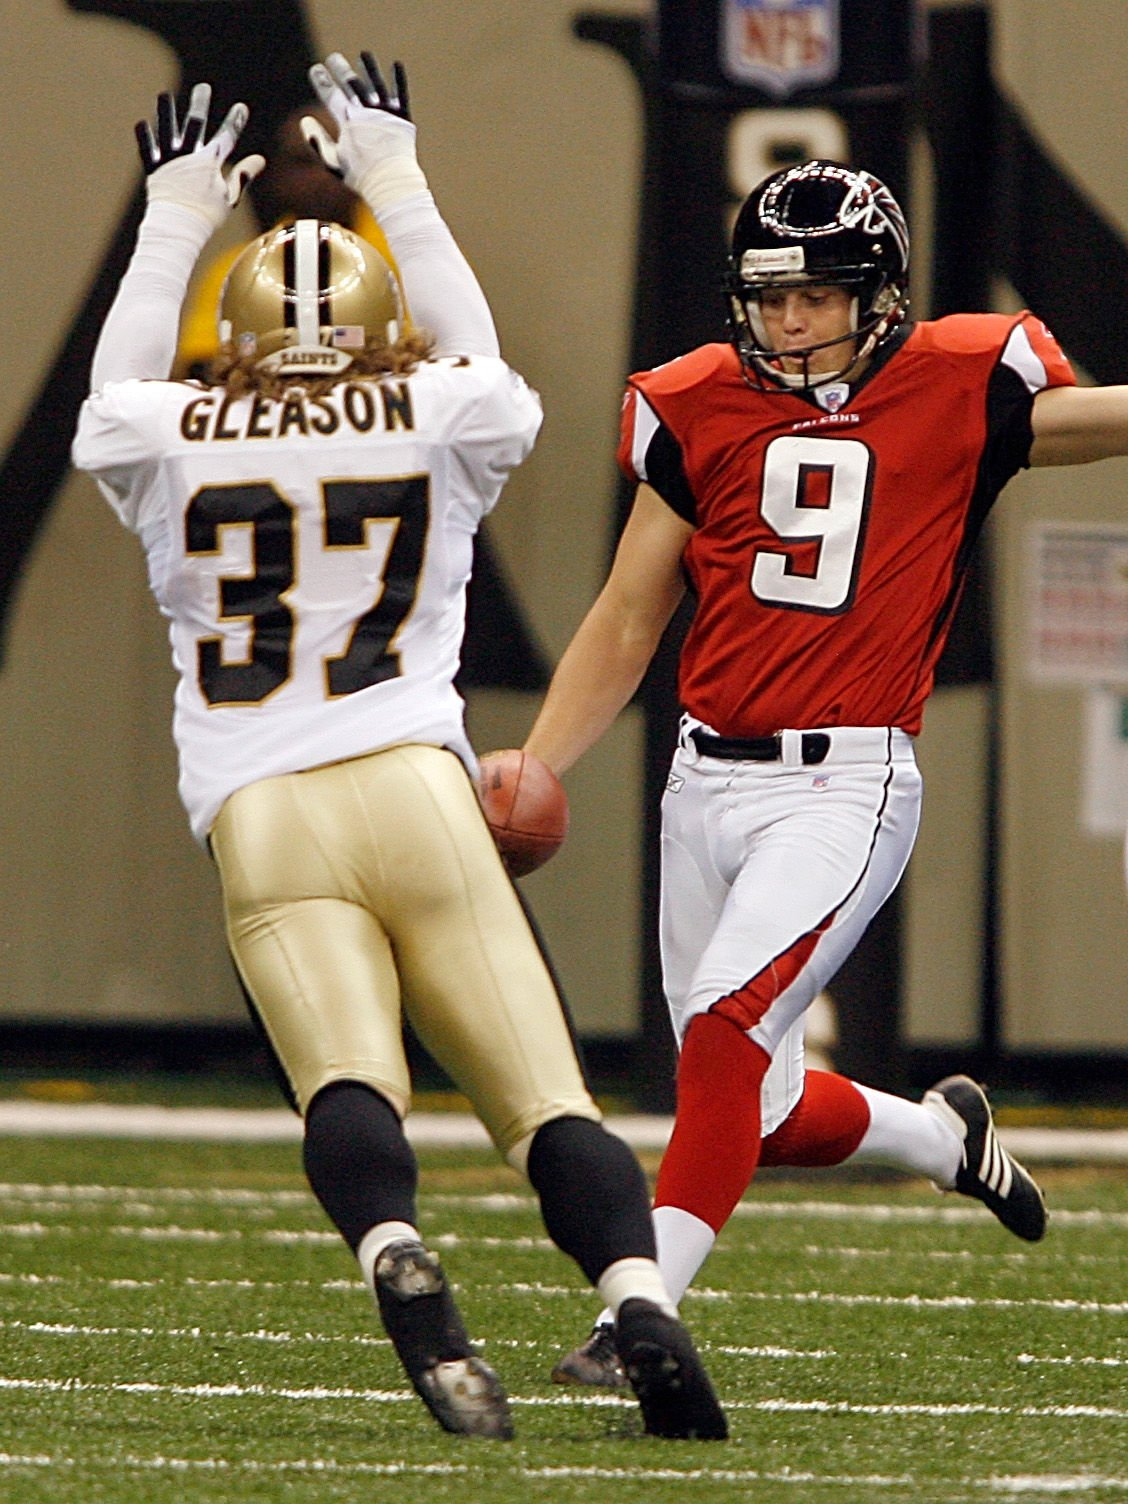 Steve Gleason's punt block gave the entire city of New Orleans hope after Katrina